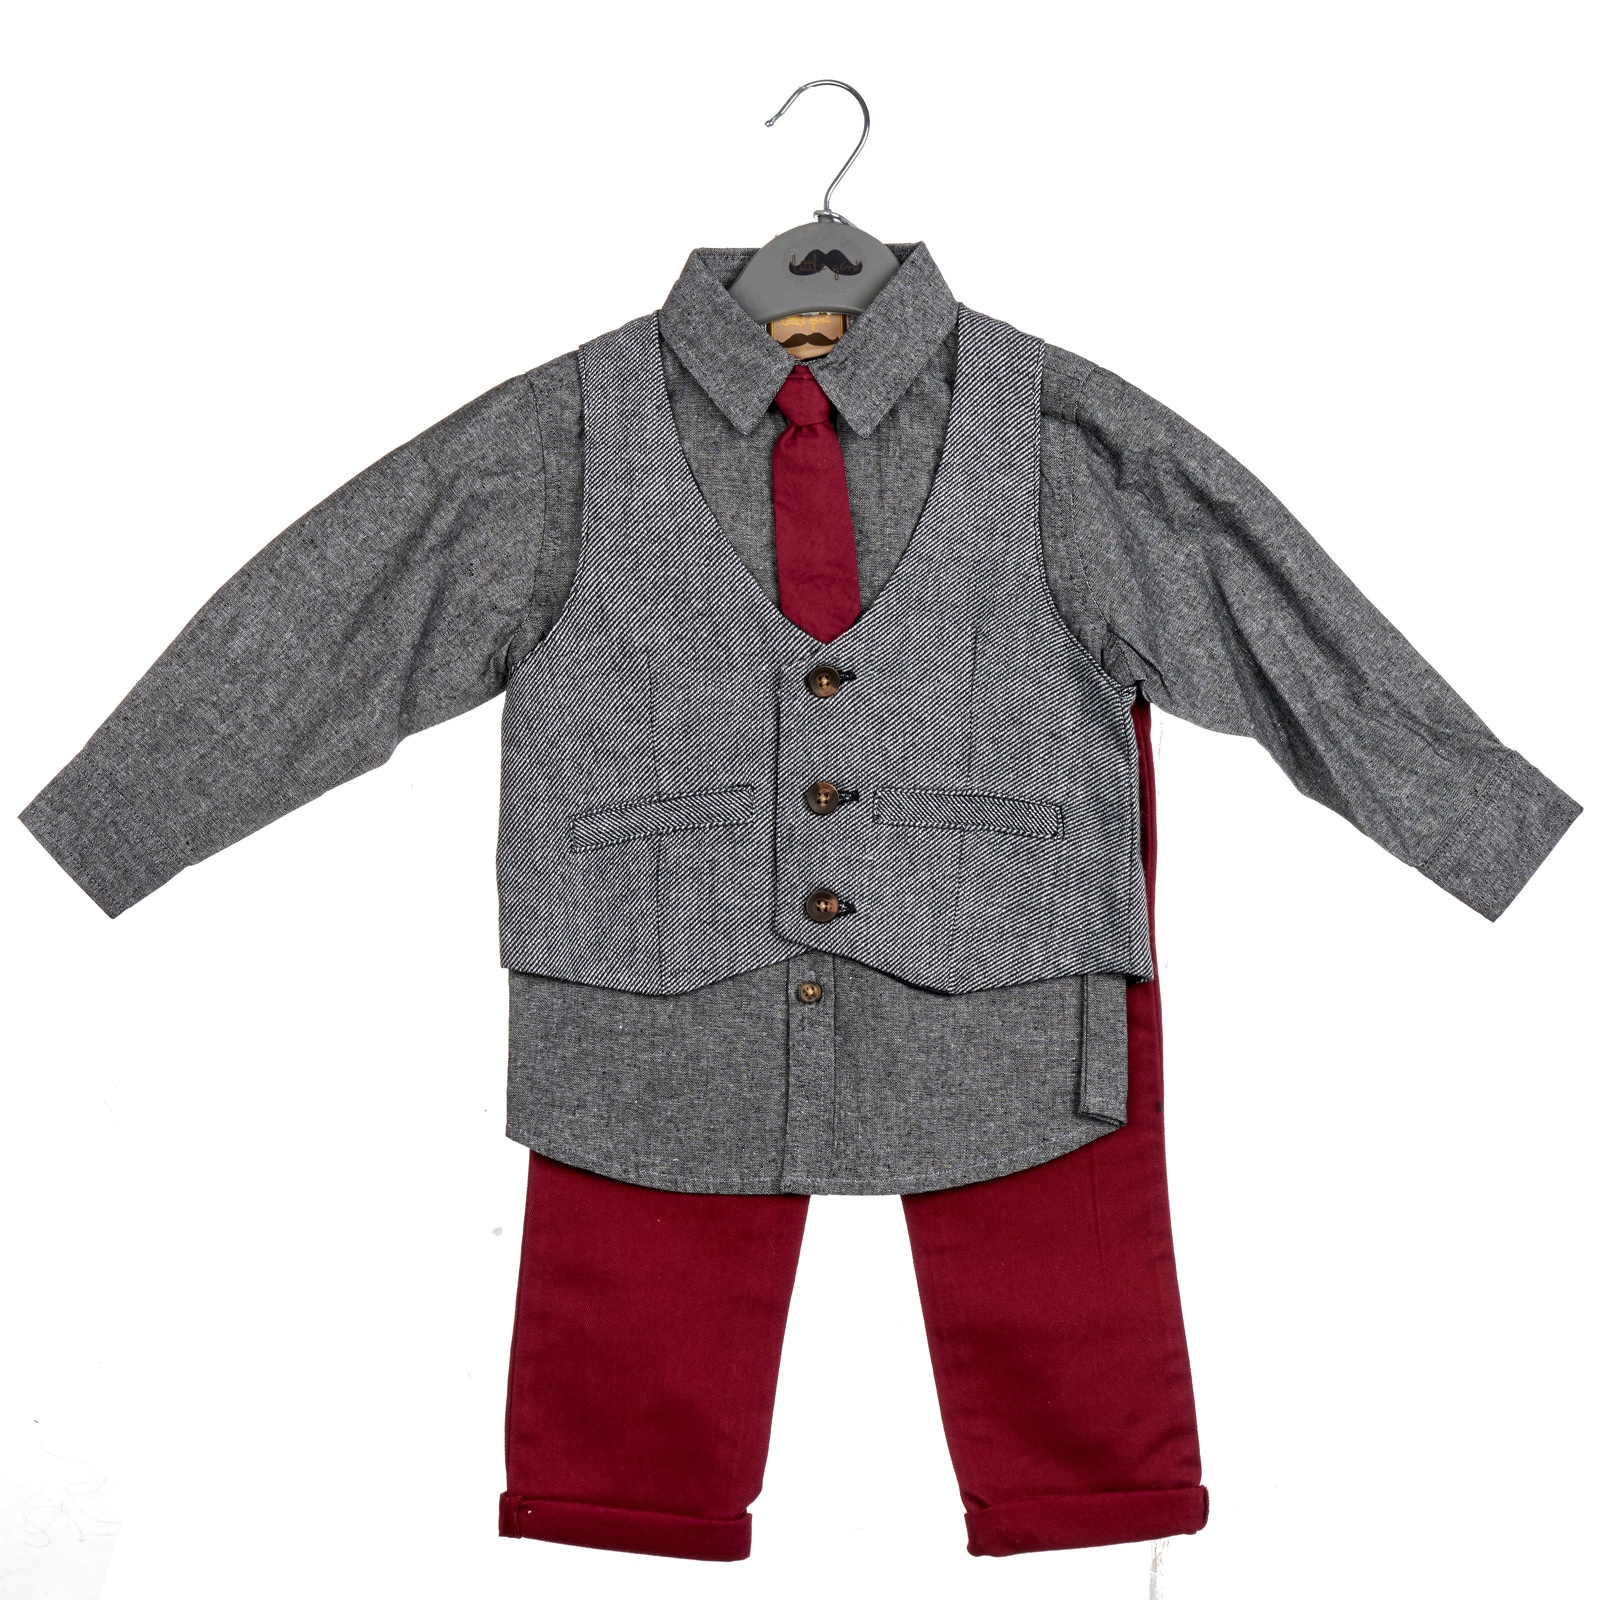 827e75147 Boys Tweed Waistcoat outfit 6-24mth – 4 Direct Uniforms